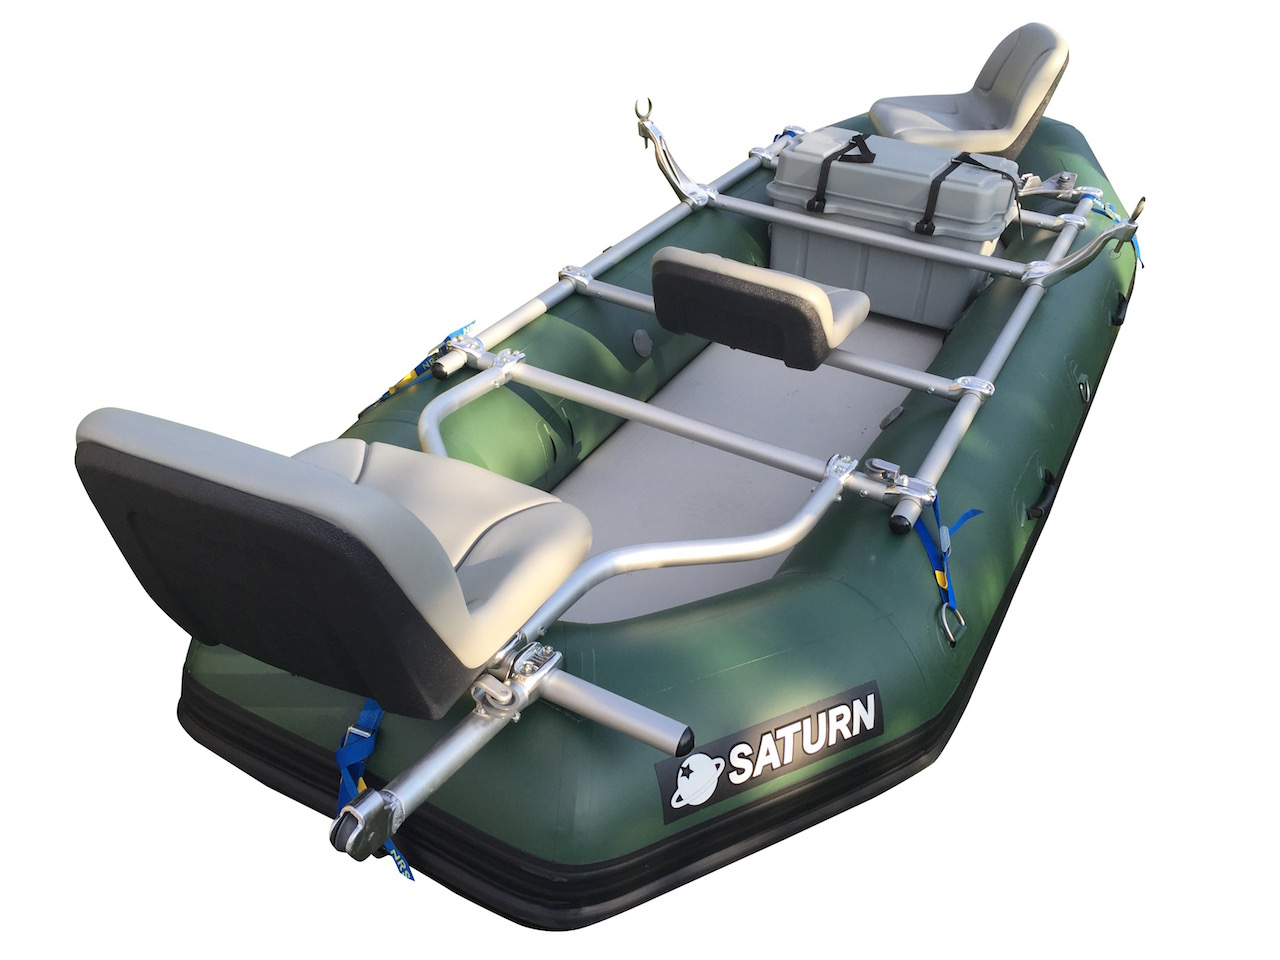 2017 Version 12'6' Saturn Whitewater Raft - Custom 3 Seat NRS Fishing Frame